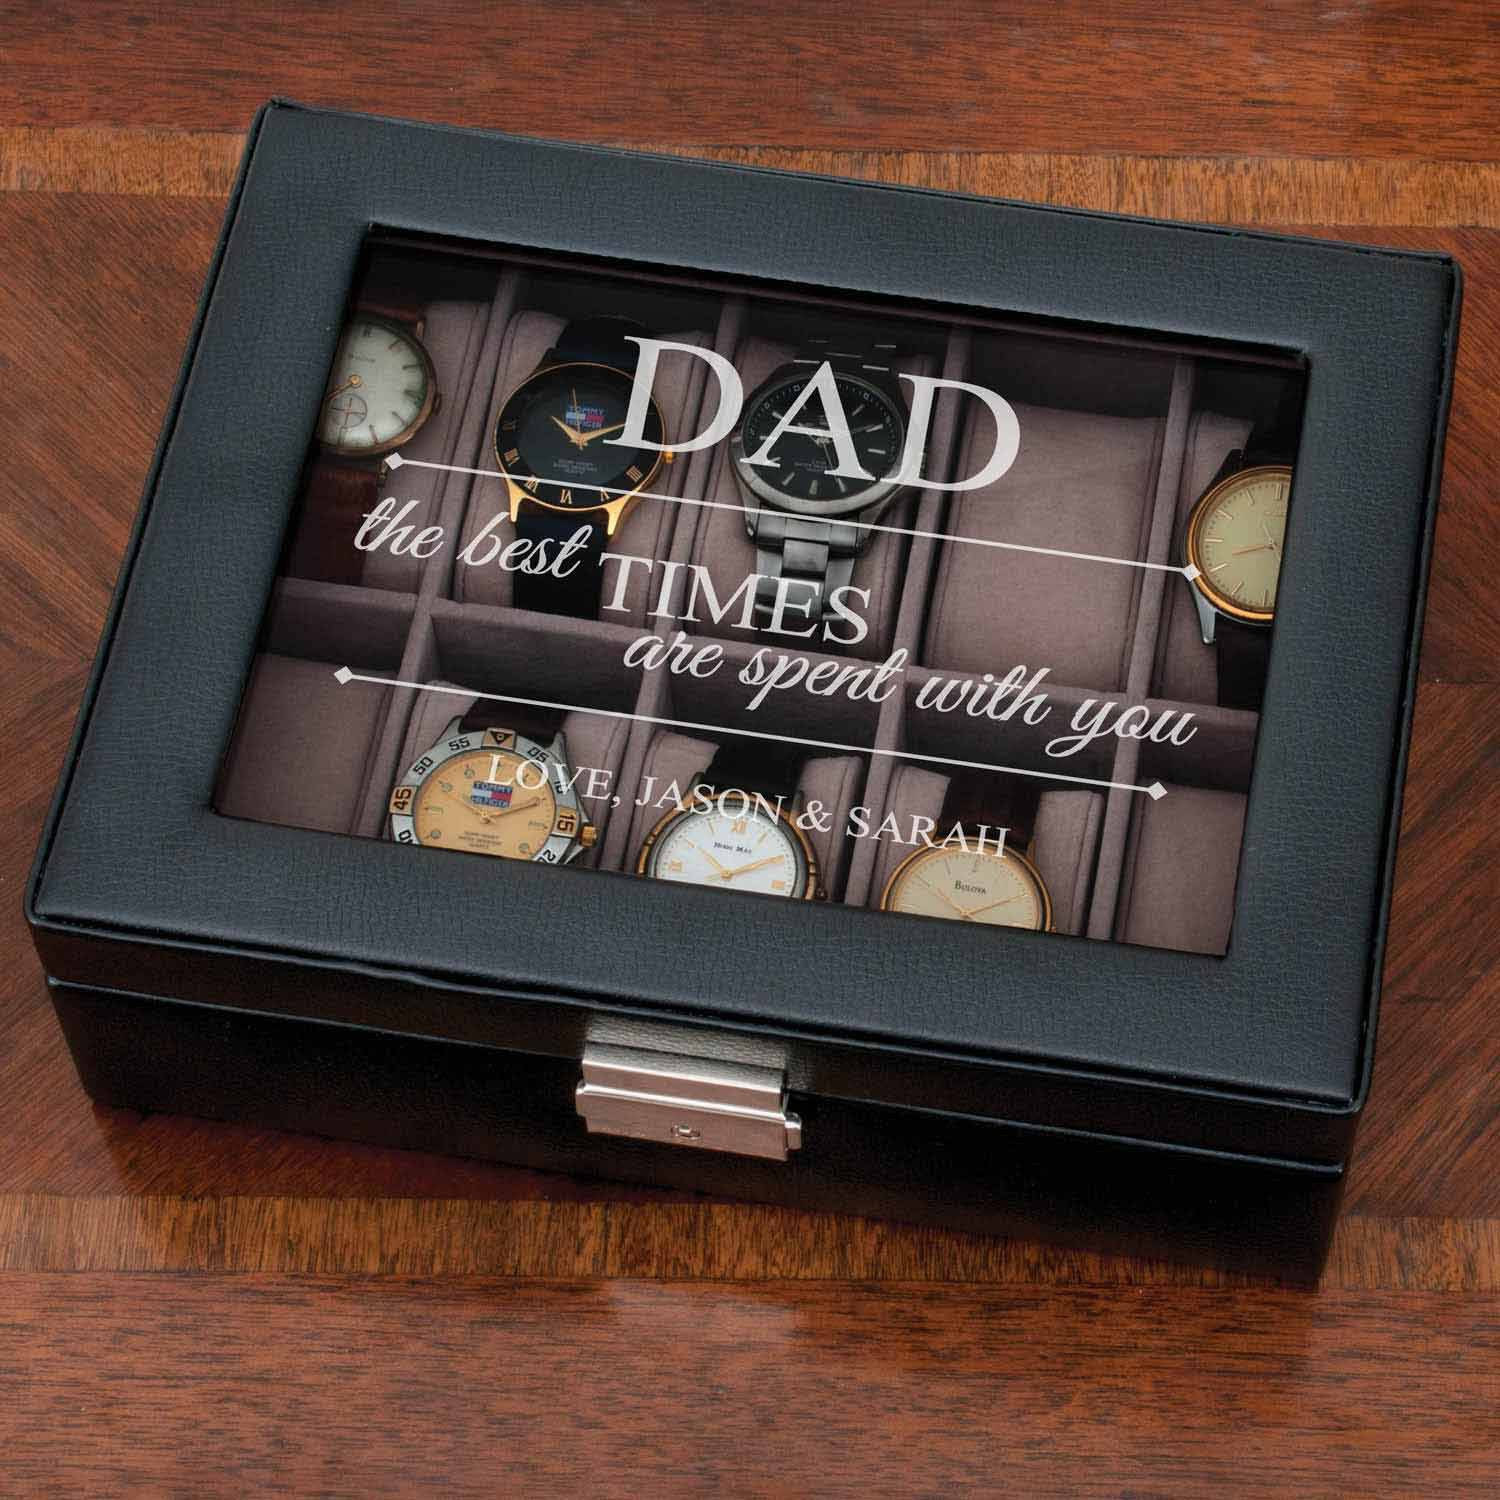 Personalized The Best Times Watch Case - Gift for Dad